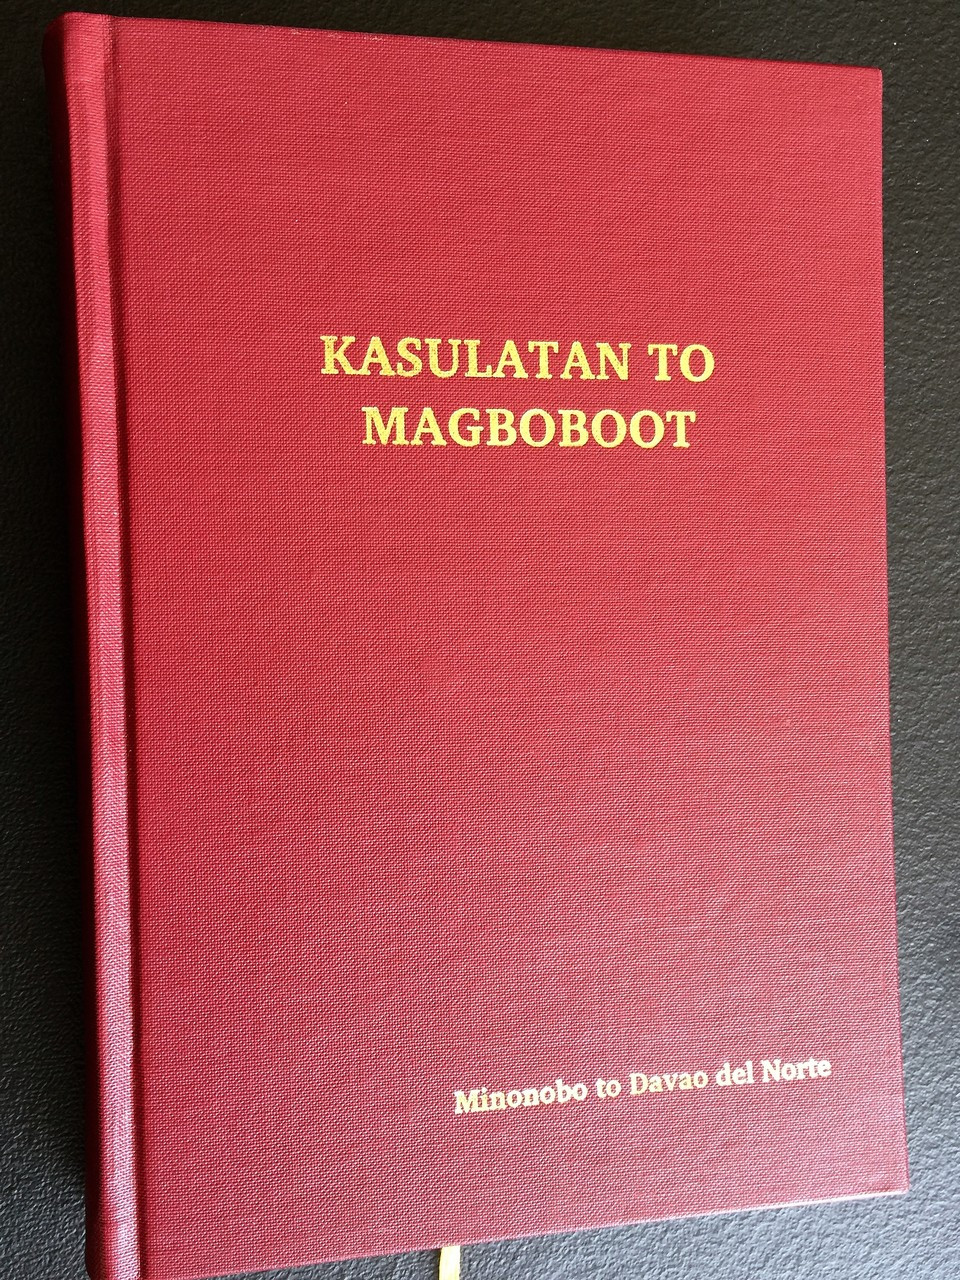 The New Testament in Ata Manobo Language as spoken in Davao del Norte /  KASULATAN TO MAGBOBOOT / Colour Maps, Red Cover / The Language of the